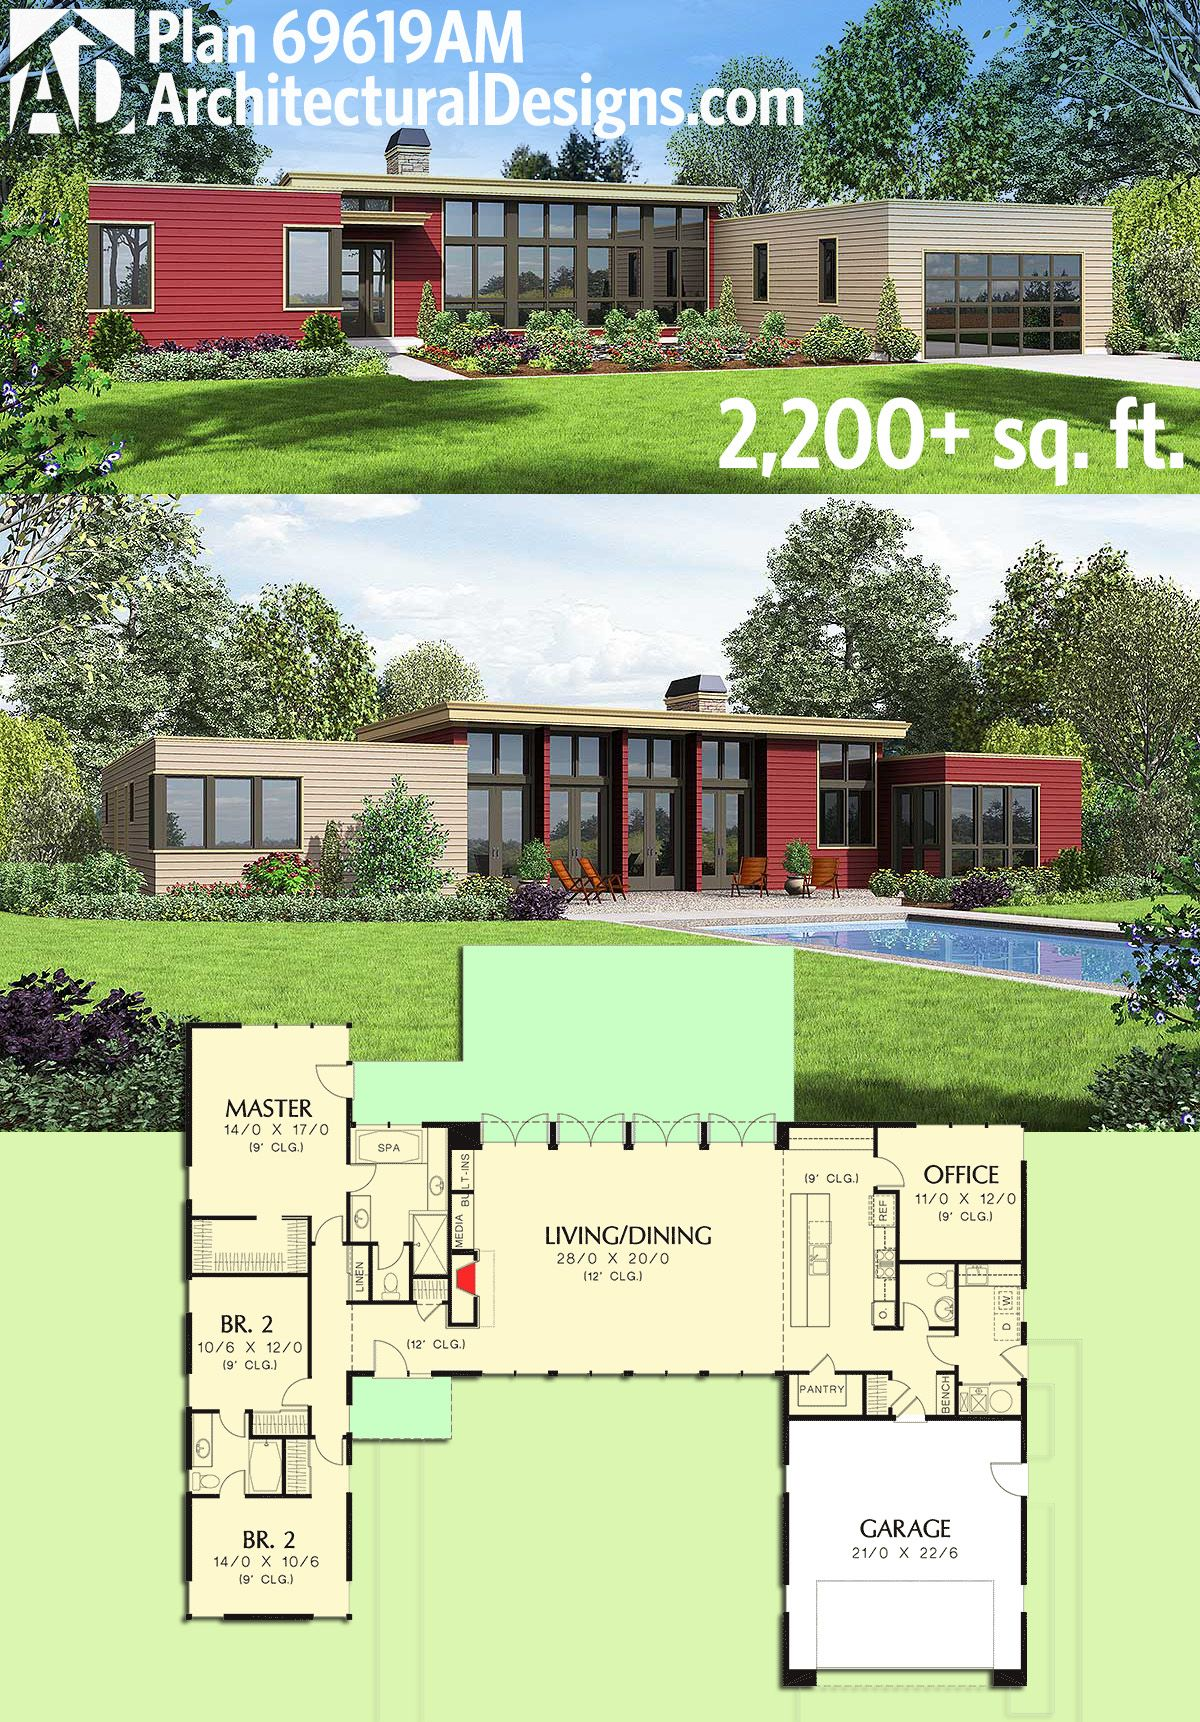 Plan 69619am 3 Bed Modern House Plan With Open Concept Layout Floor Plans House Plans